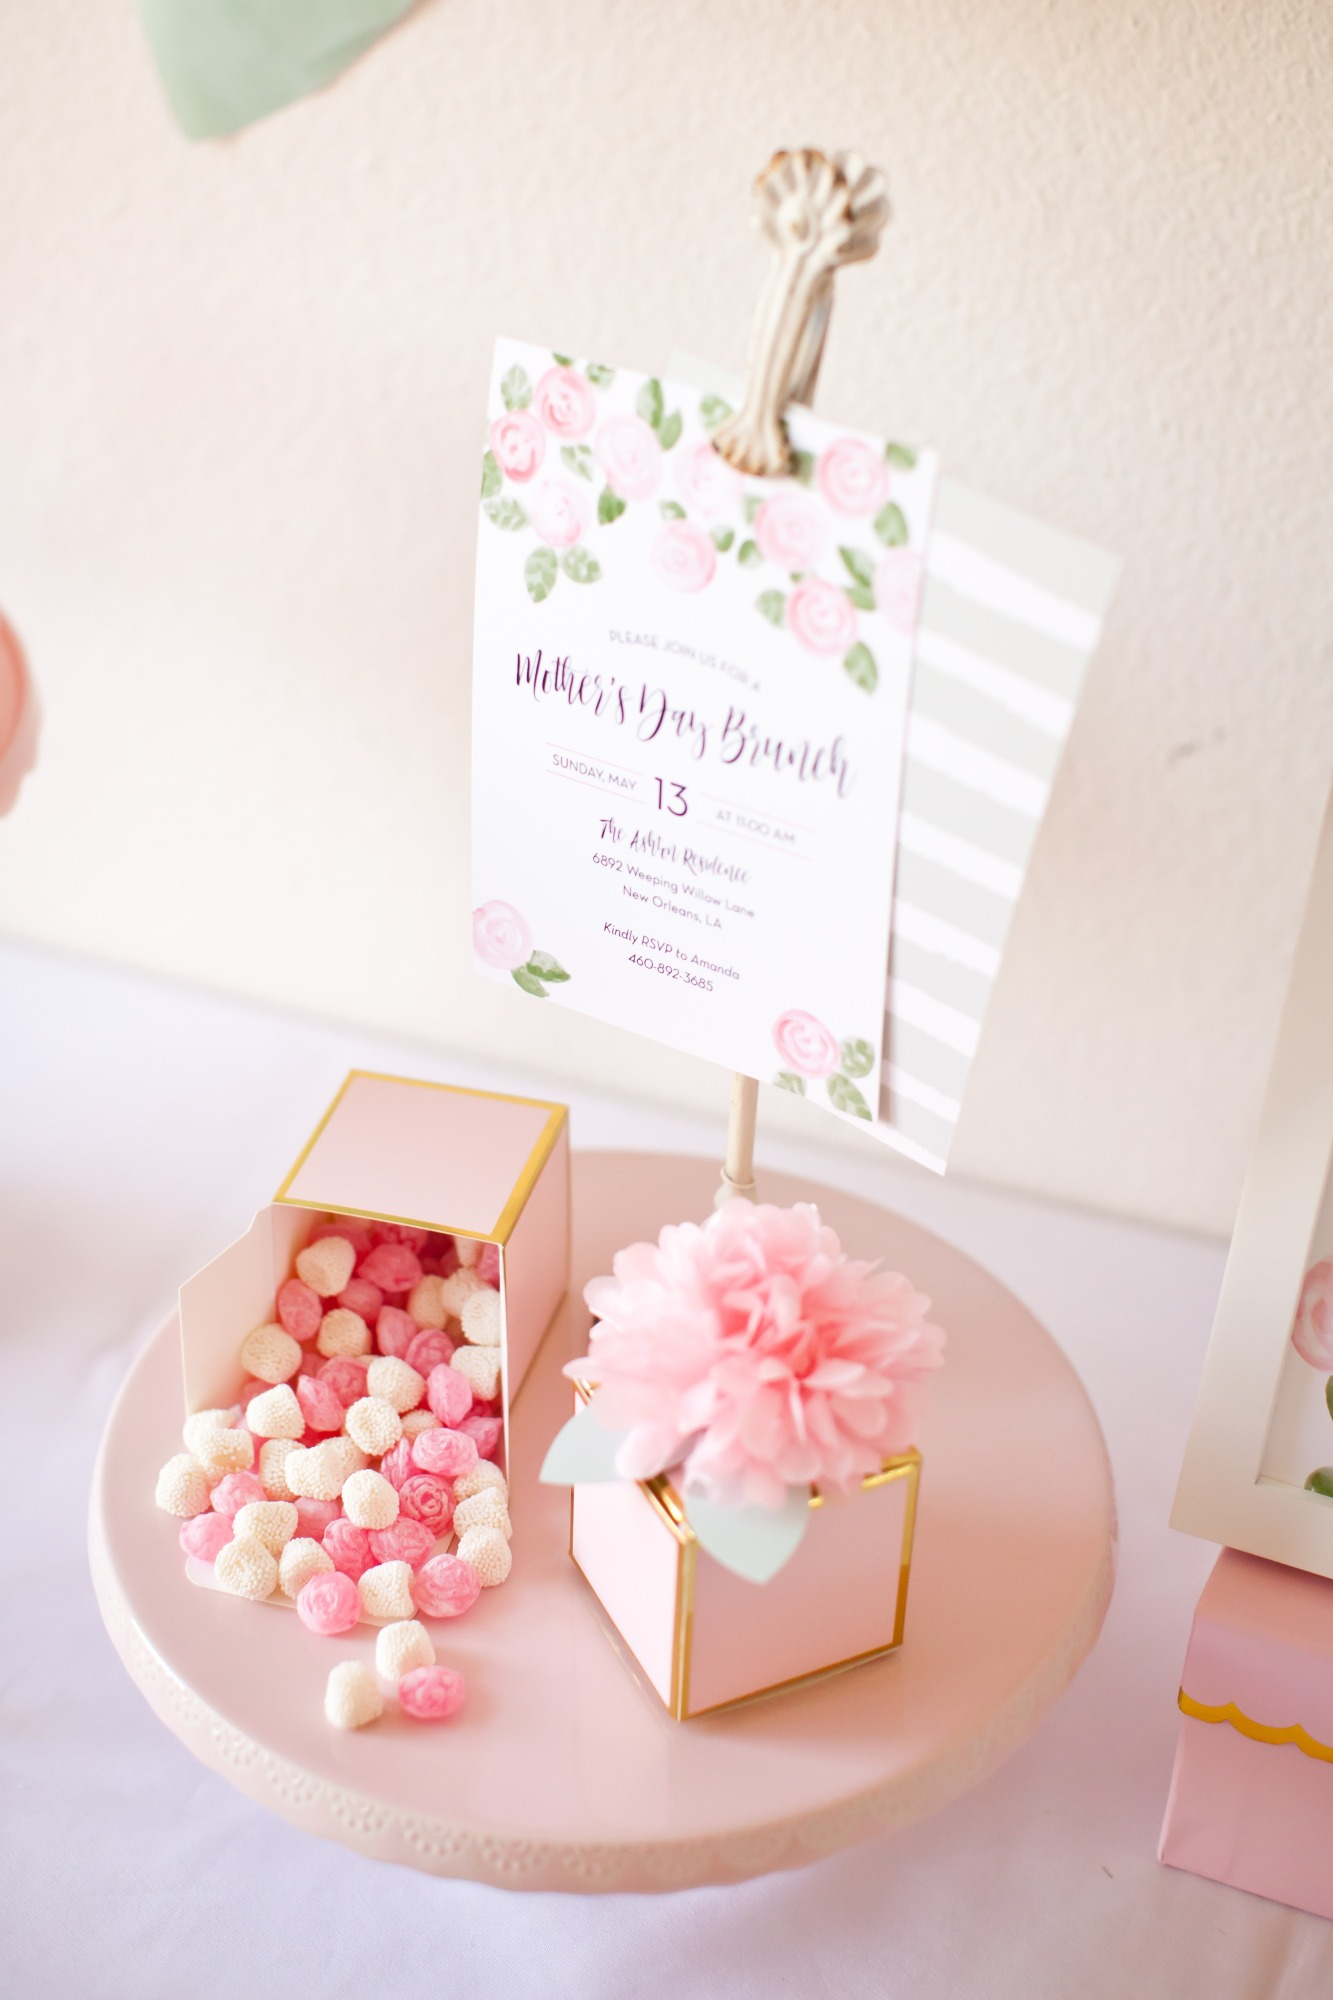 Invitation and Favor Box of Candy from Mother's Day Brunch Styled by Kiss Me Kate Studio | Black Twine